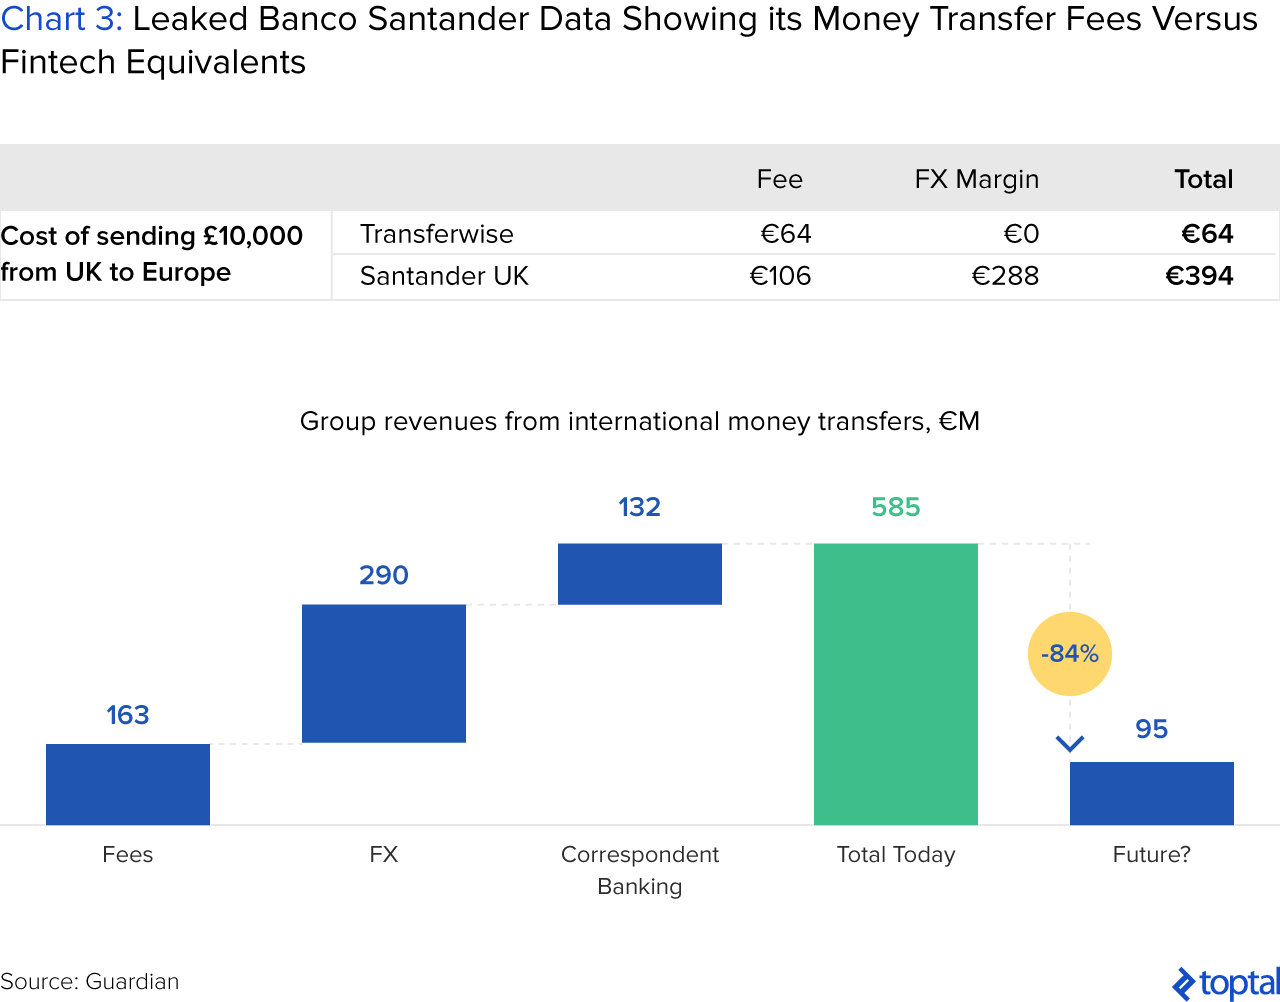 Chart 3: Leaked Banco Santander Data Showing Its Money Transfer Fees Versus Fintech Equivalents